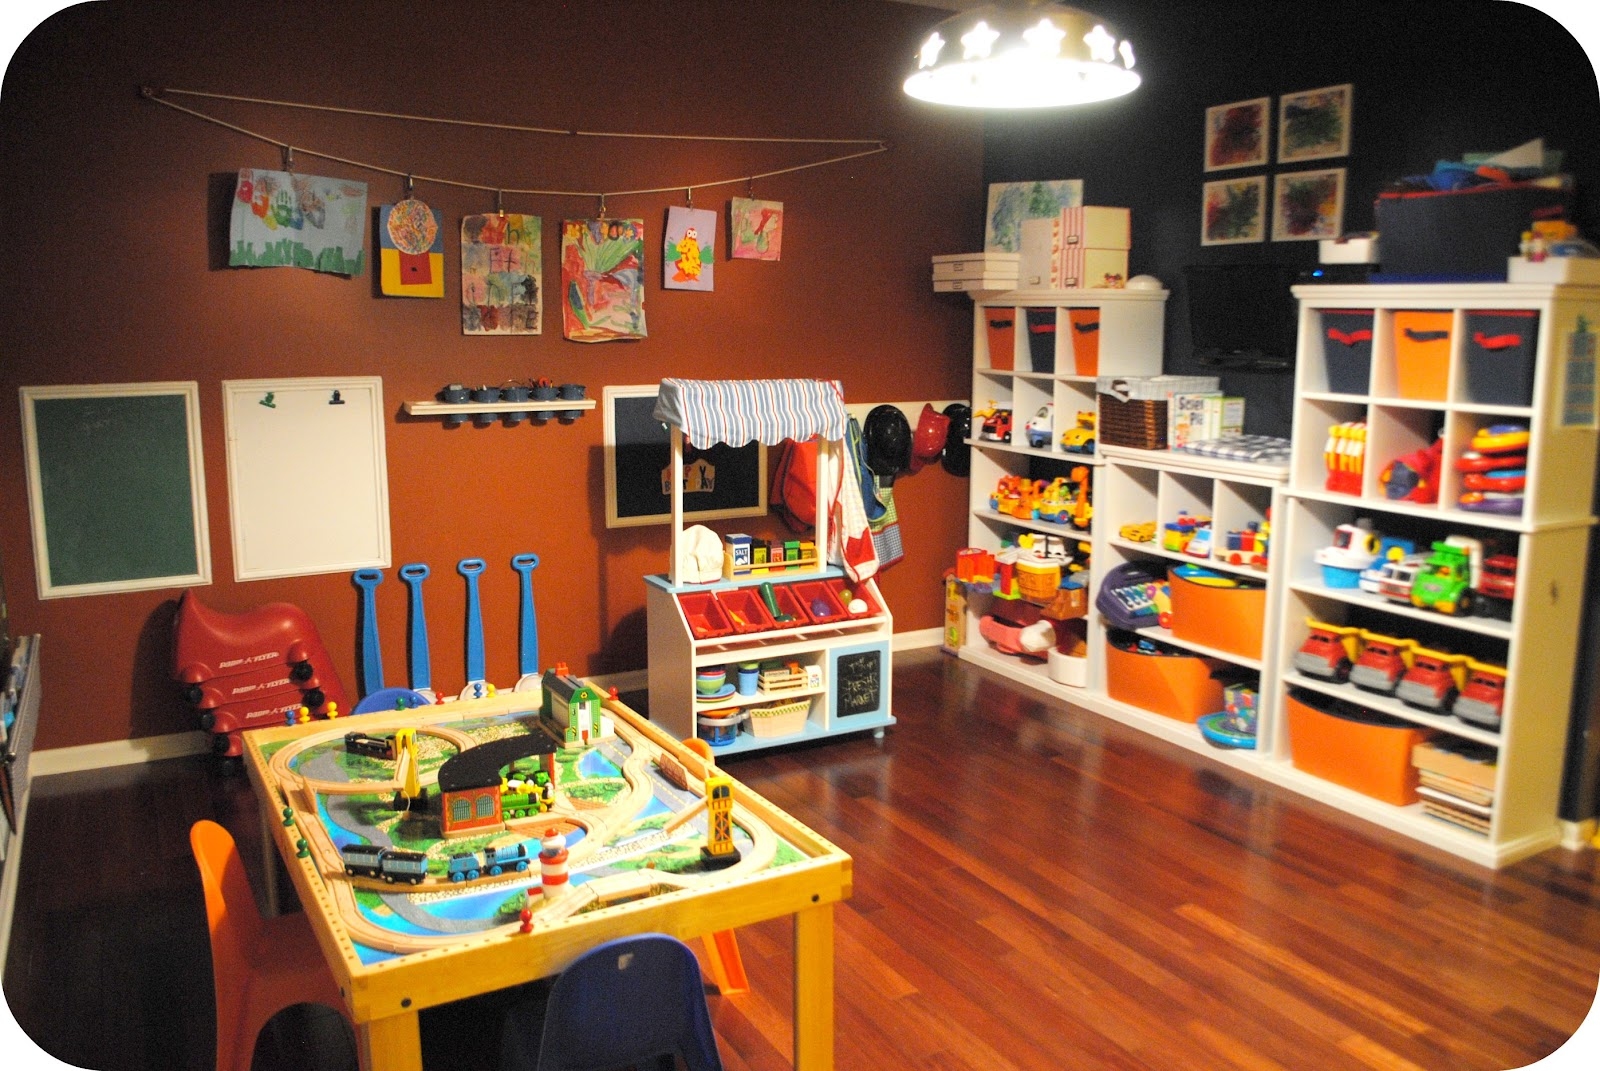 Child Playroom Ideas Our Wonderfilled Life Giveaway Playroom Design Help